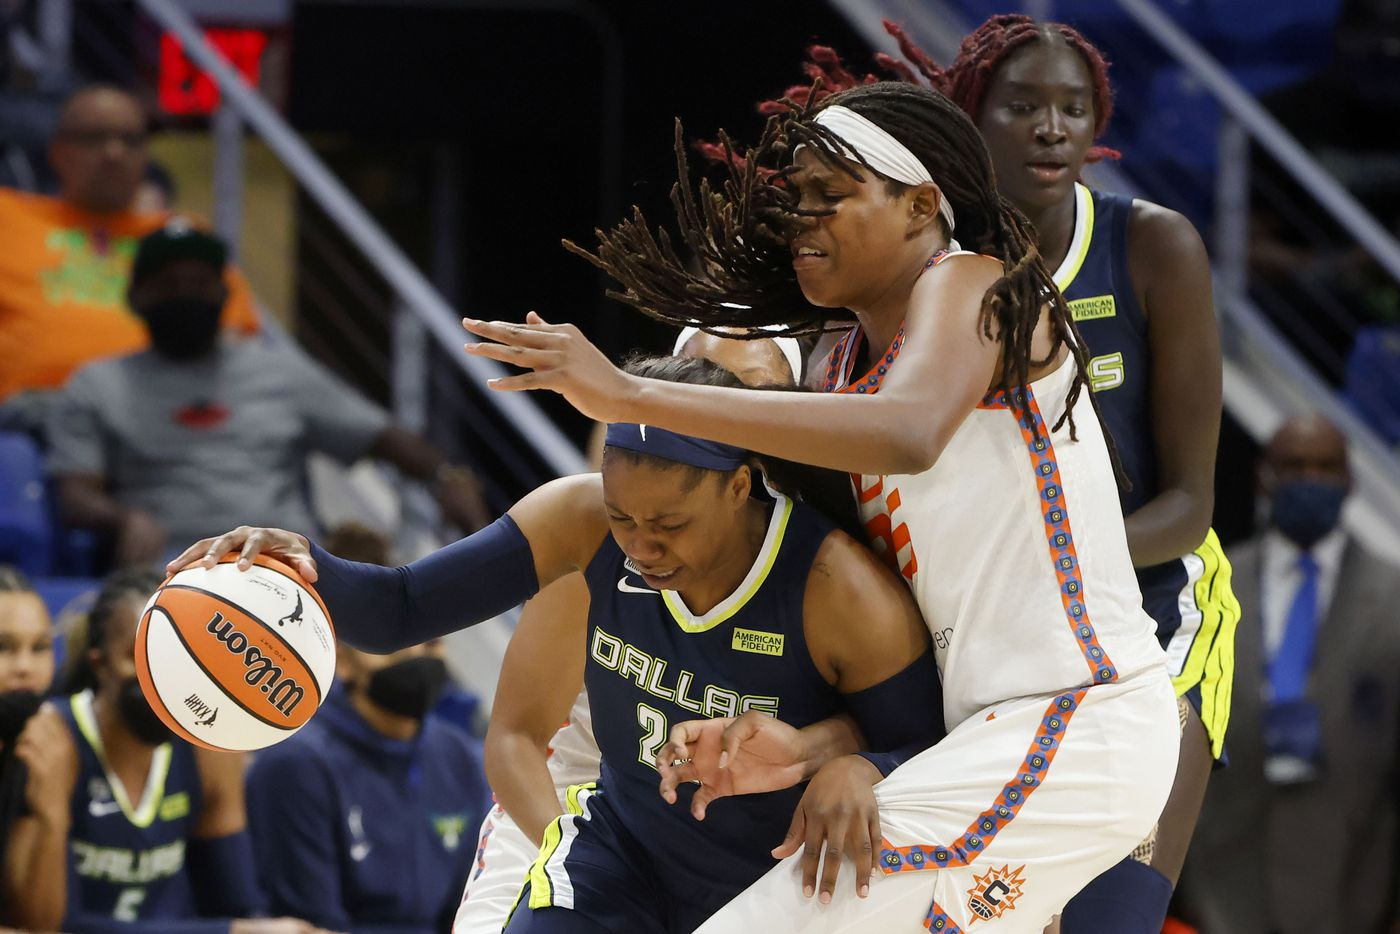 Dallas Wings guard Arike Ogunbowale (24) tries to get past Connecticut Sun forward Jonquel Jones (35) during the first half of a WNBA basketball game in Arlington, Texas on Tuesday, Sept. 07, 2021. (Michael Ainsworth/Special Contributor)